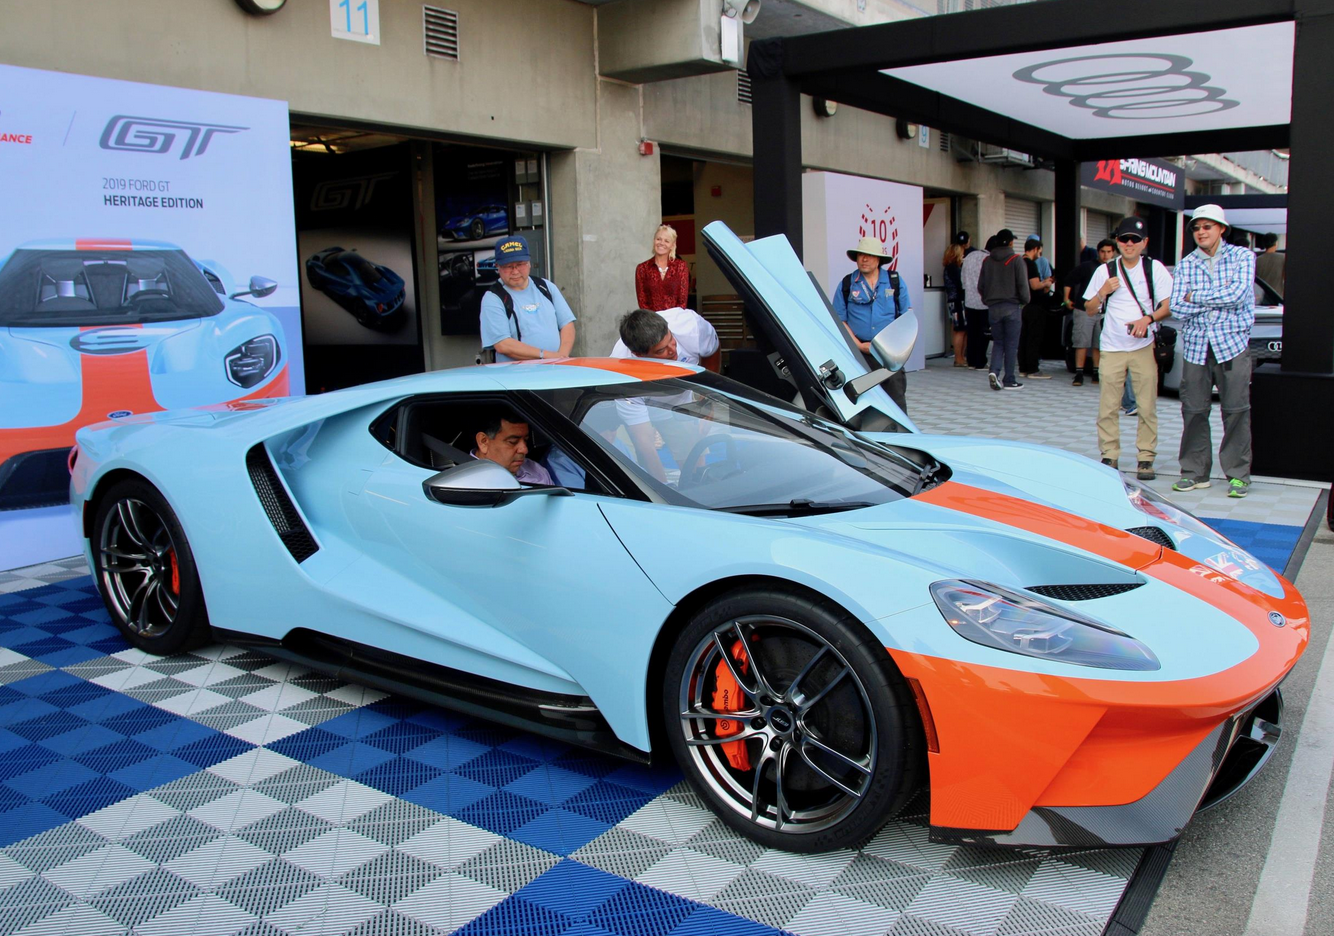 Gulf Is Extremely Proud In  To Be Celebrating The Th Anniversary Of Its First Le Mans Win With The Legendary Ford Gt And As A Fitting Climax To